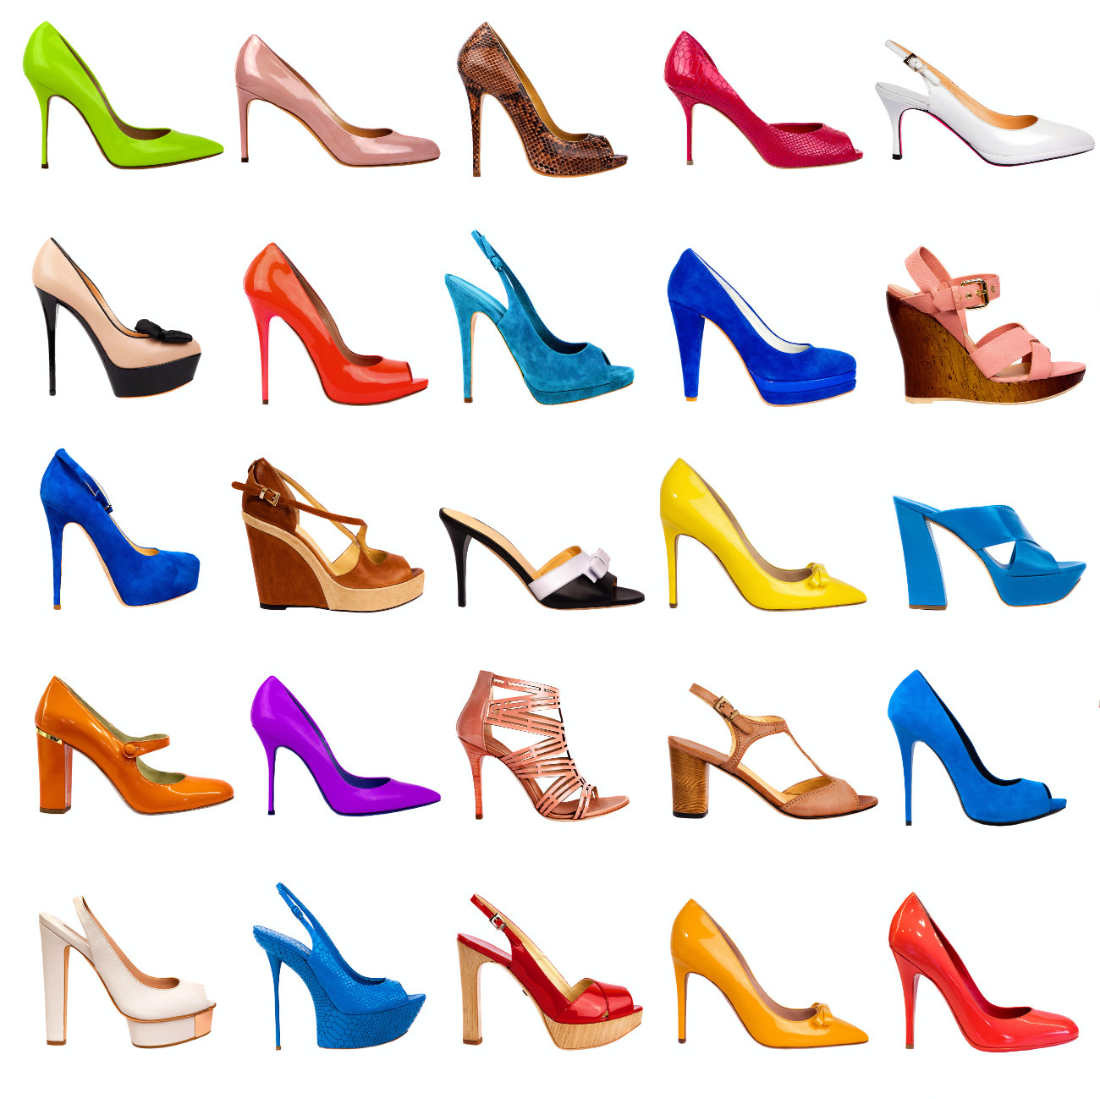 DIfferent types of heels in different colors on a white background.